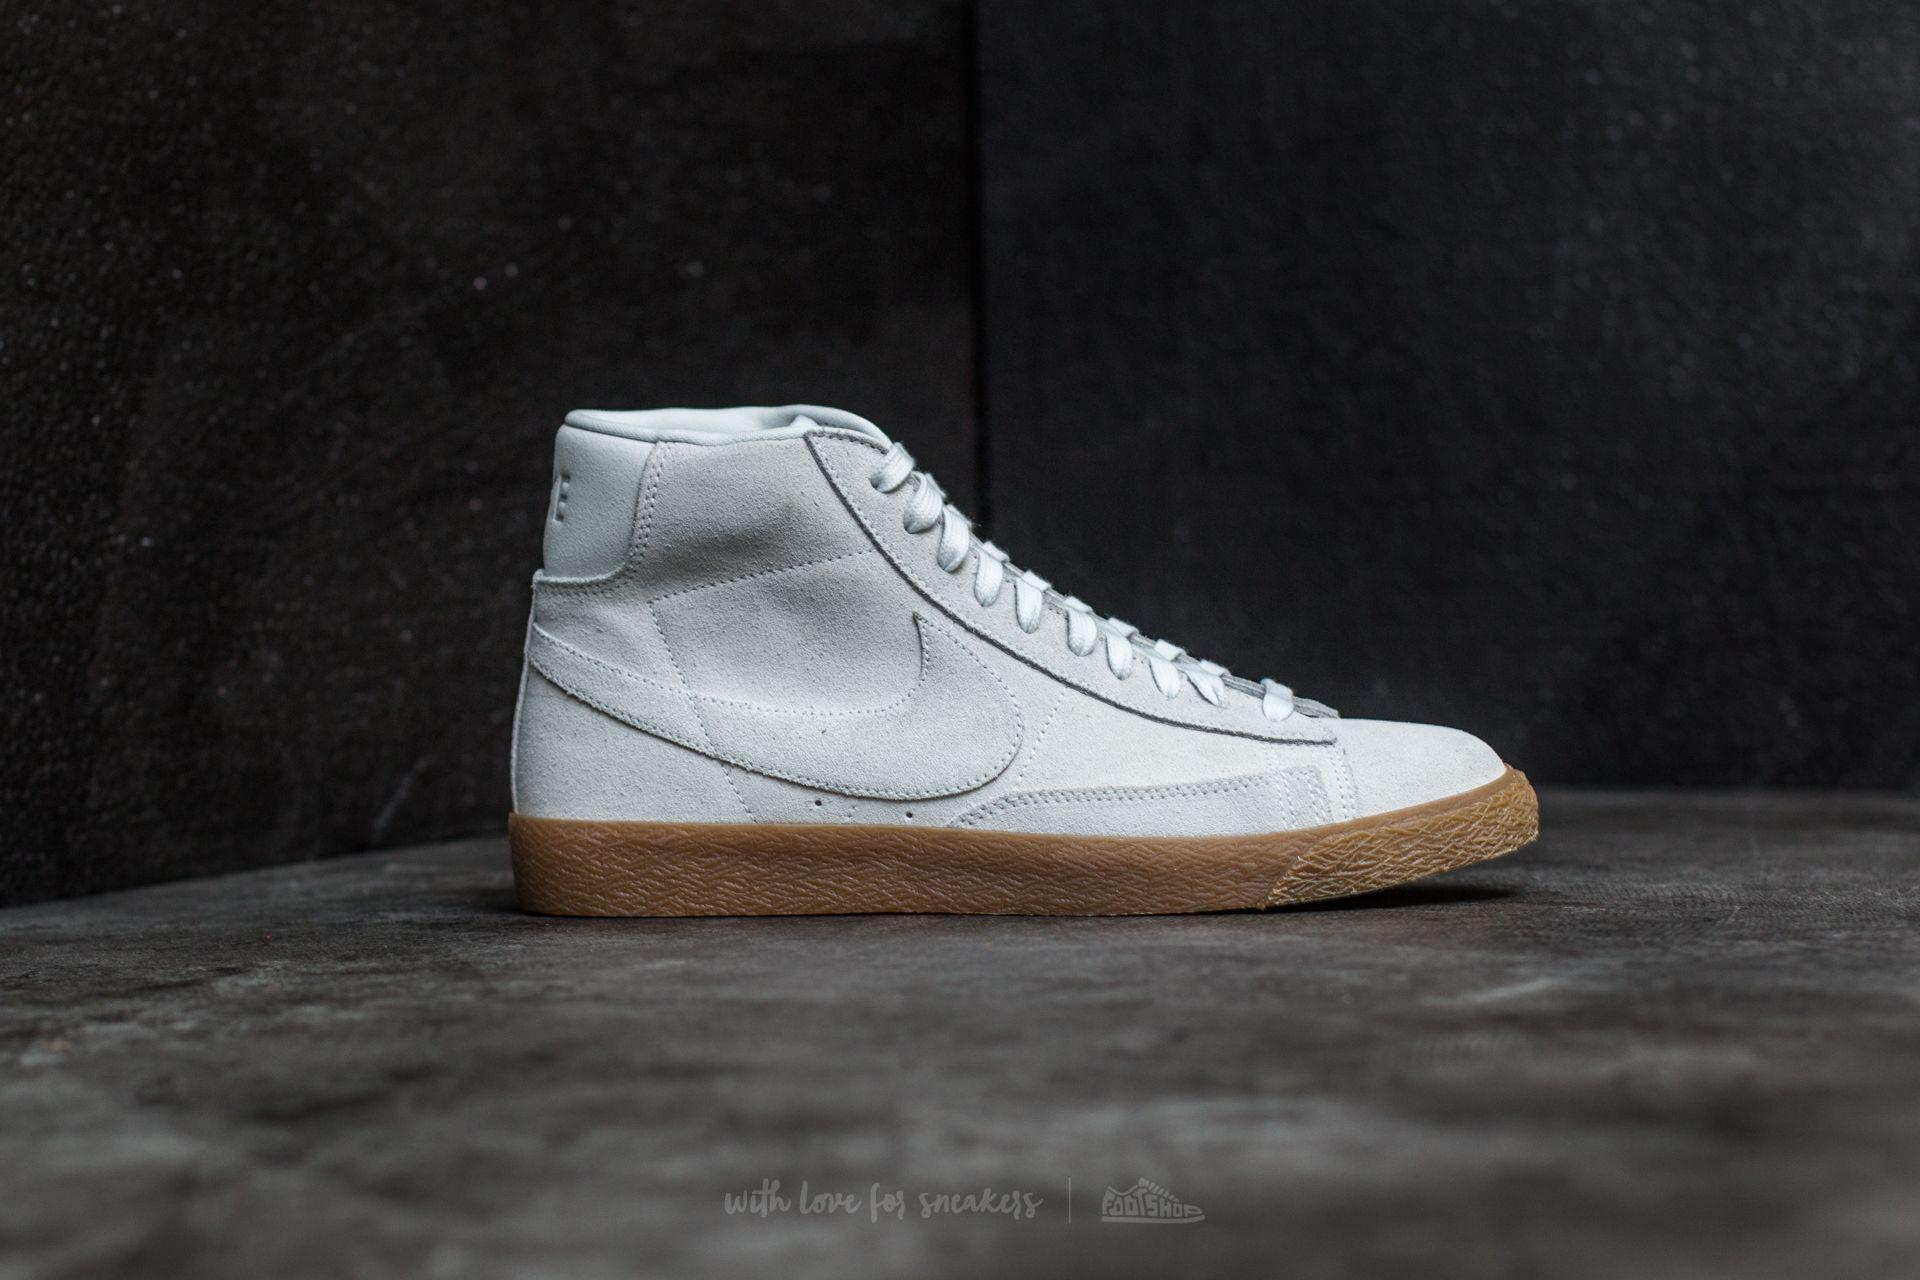 best sneakers 96a00 b8ee4 Lyst - Nike Blazer Mid Premium Off White Off White in White